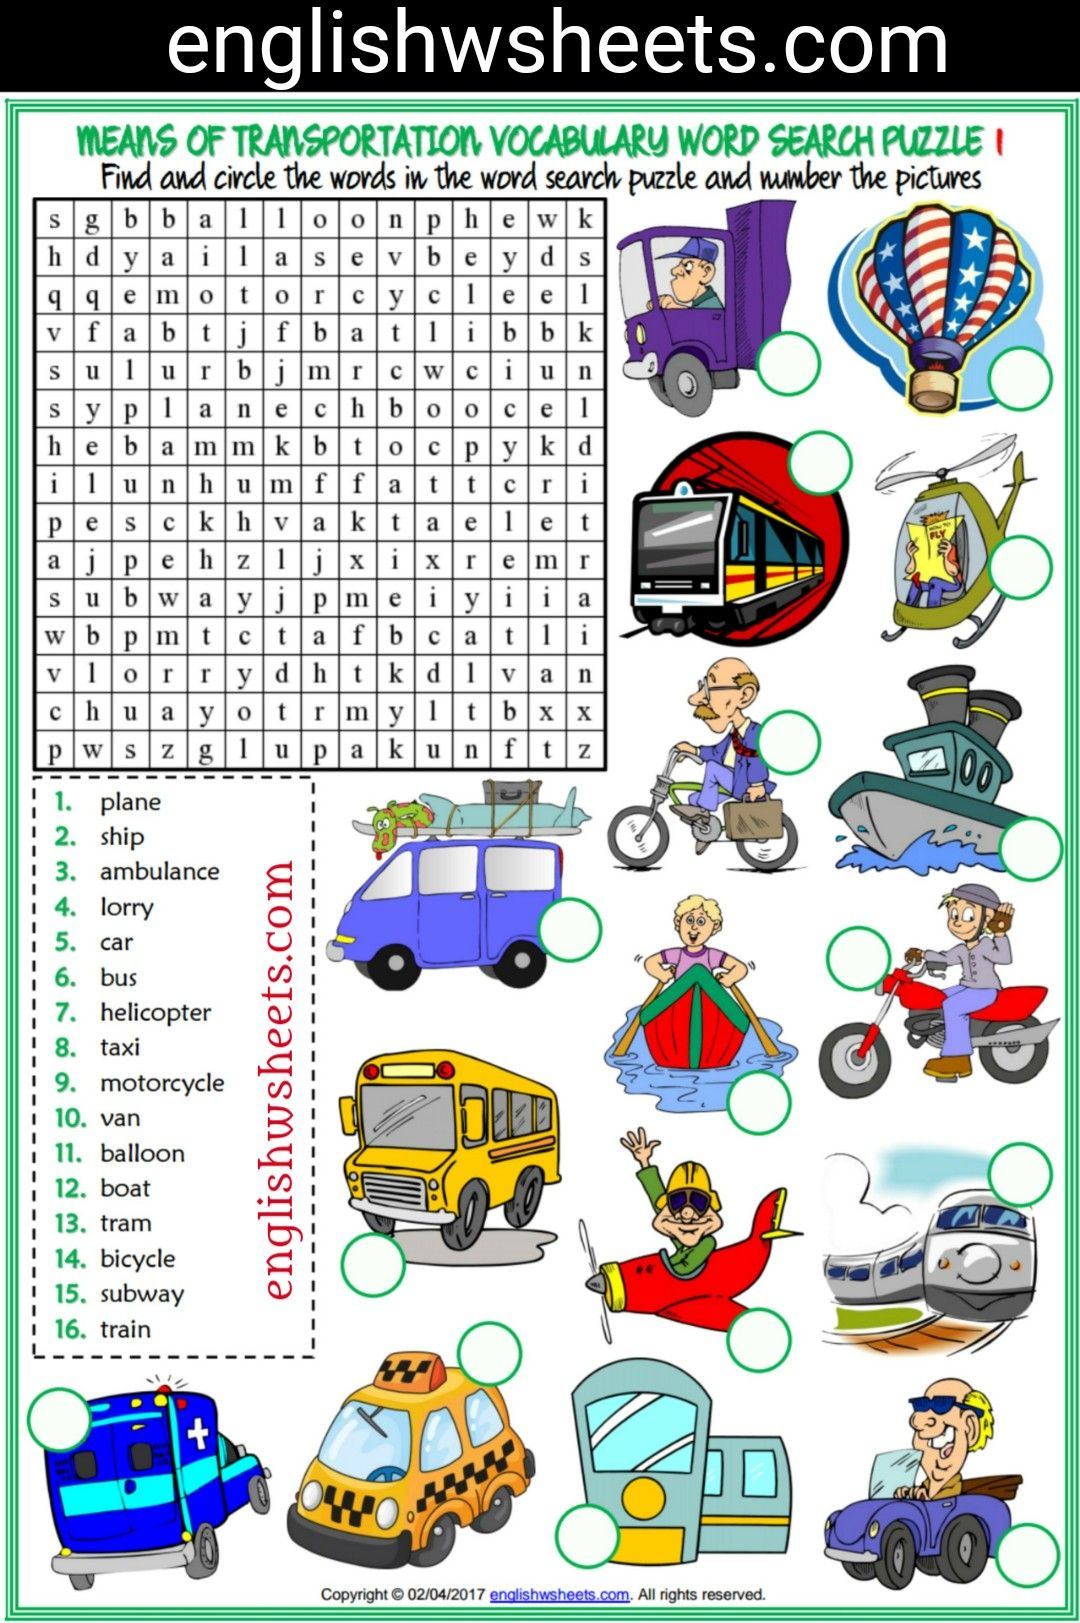 Means Of Transportation Esl Printable Word Search Puzzle Worksheets For Kids 2 Sets Means